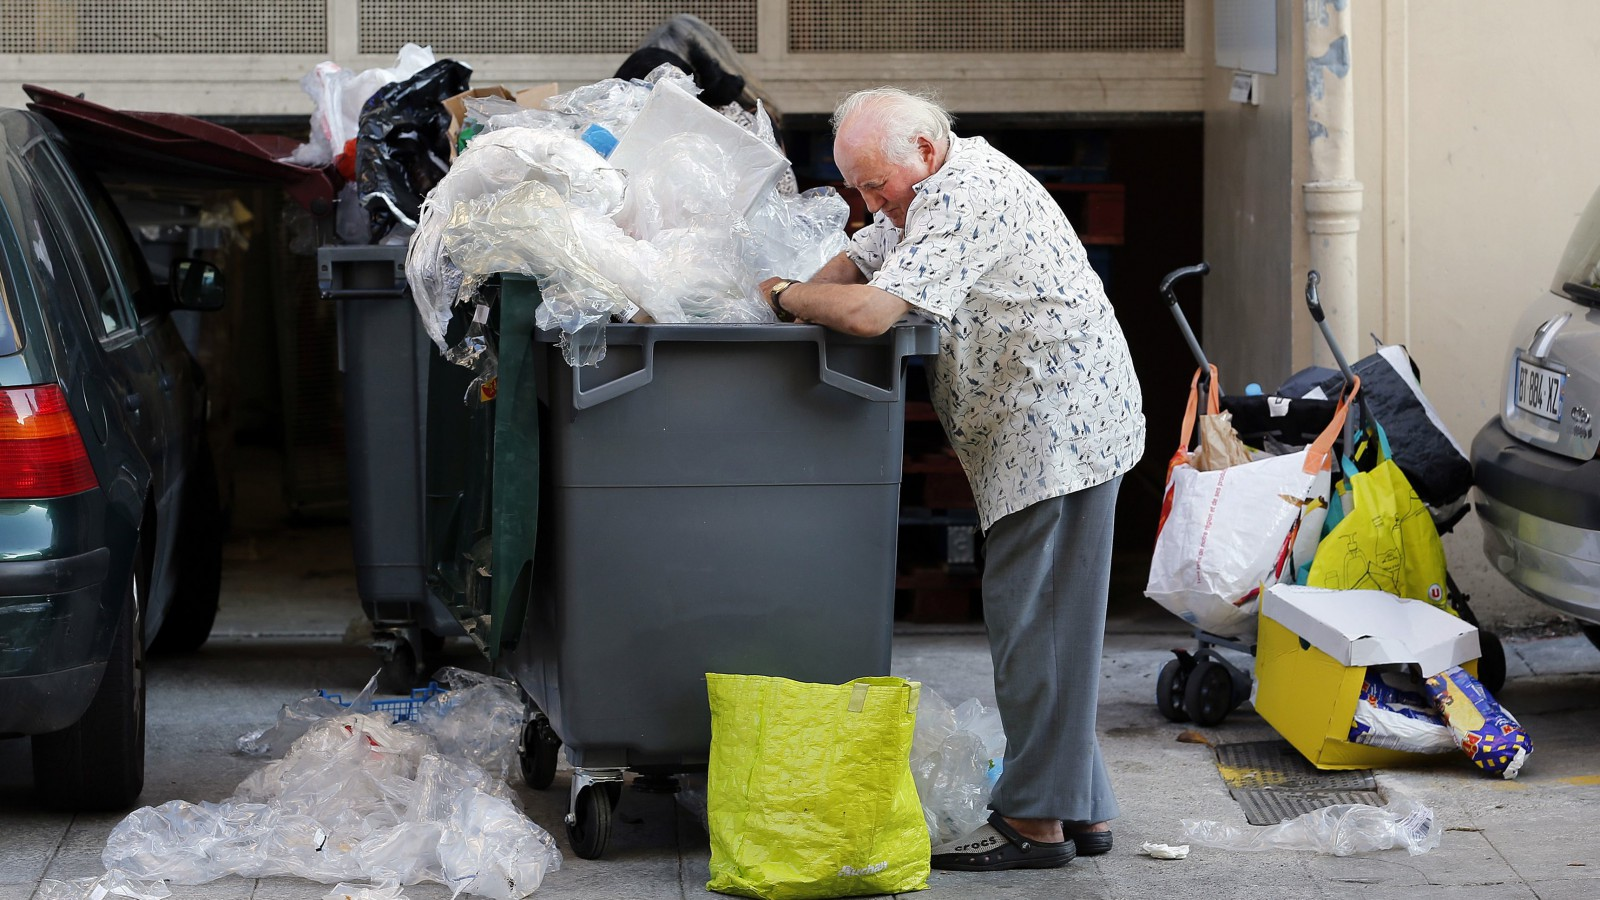 Eugene, an 87-year-old retired Frenchman, searches for food in a garbage container next to a supermarket in Nice June 13, 2013. A former interior decorator, and a pensioner of 24 years, Eugene lives in Nice and is the owner of a small apartment in a bourgeois district of the city. Although he receives a monthly pension of 1000 euros (1300 $US), he started rummaging through trash bins to collect food in 2012, as he did when a teenager during World War II, because 'times are hard' he said. He drives his old car seeking out supermarket trash containers in different parts of the city to fill his fridge. Eugene dreams of going to Las Vegas. Following a government report today June 14, 2013 the French should pay contributions for longer to get a full pension and well-off pensioners should get fewer tax rebates.